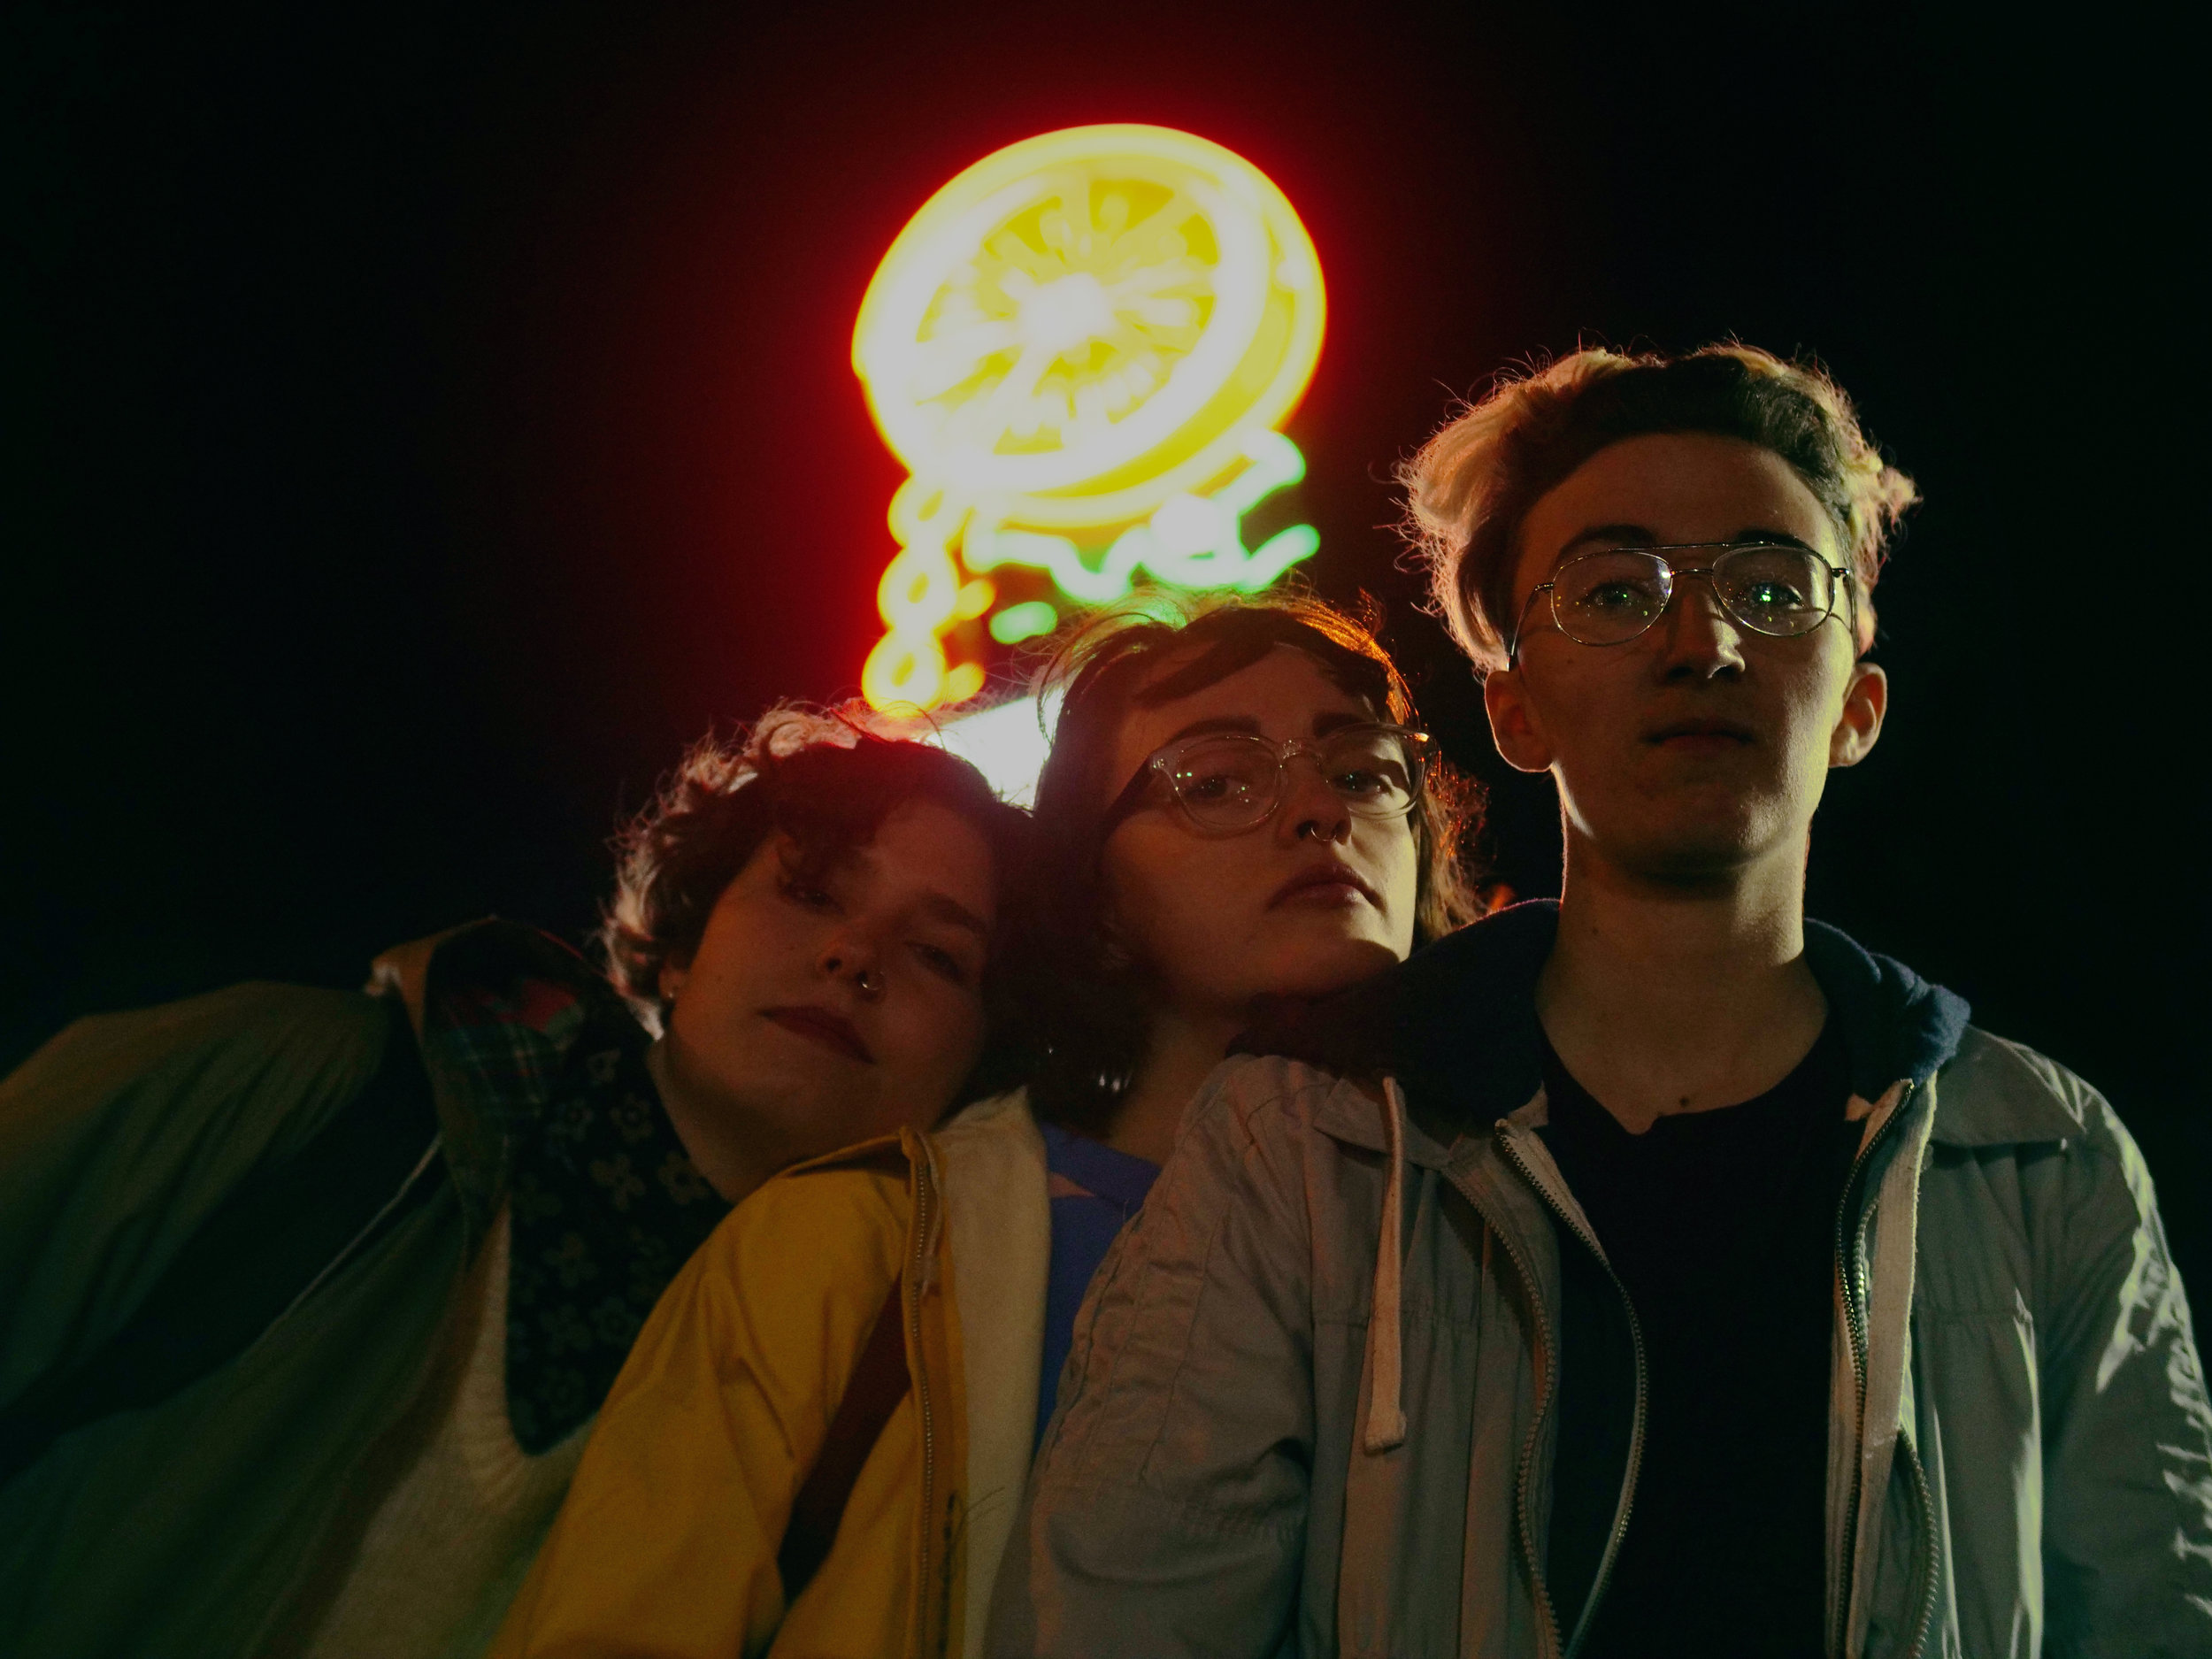 """After teasing the world with their math-y slammer, """"I'm So Tired', Lonely Parade return with news of their Buzz-debut LP, The Pits (out 9/14).  Head over to   Rookie Mag  for the premiere of the video for  Night Cruise  (directed by Shawn Kosmo), and a feature interview!"""